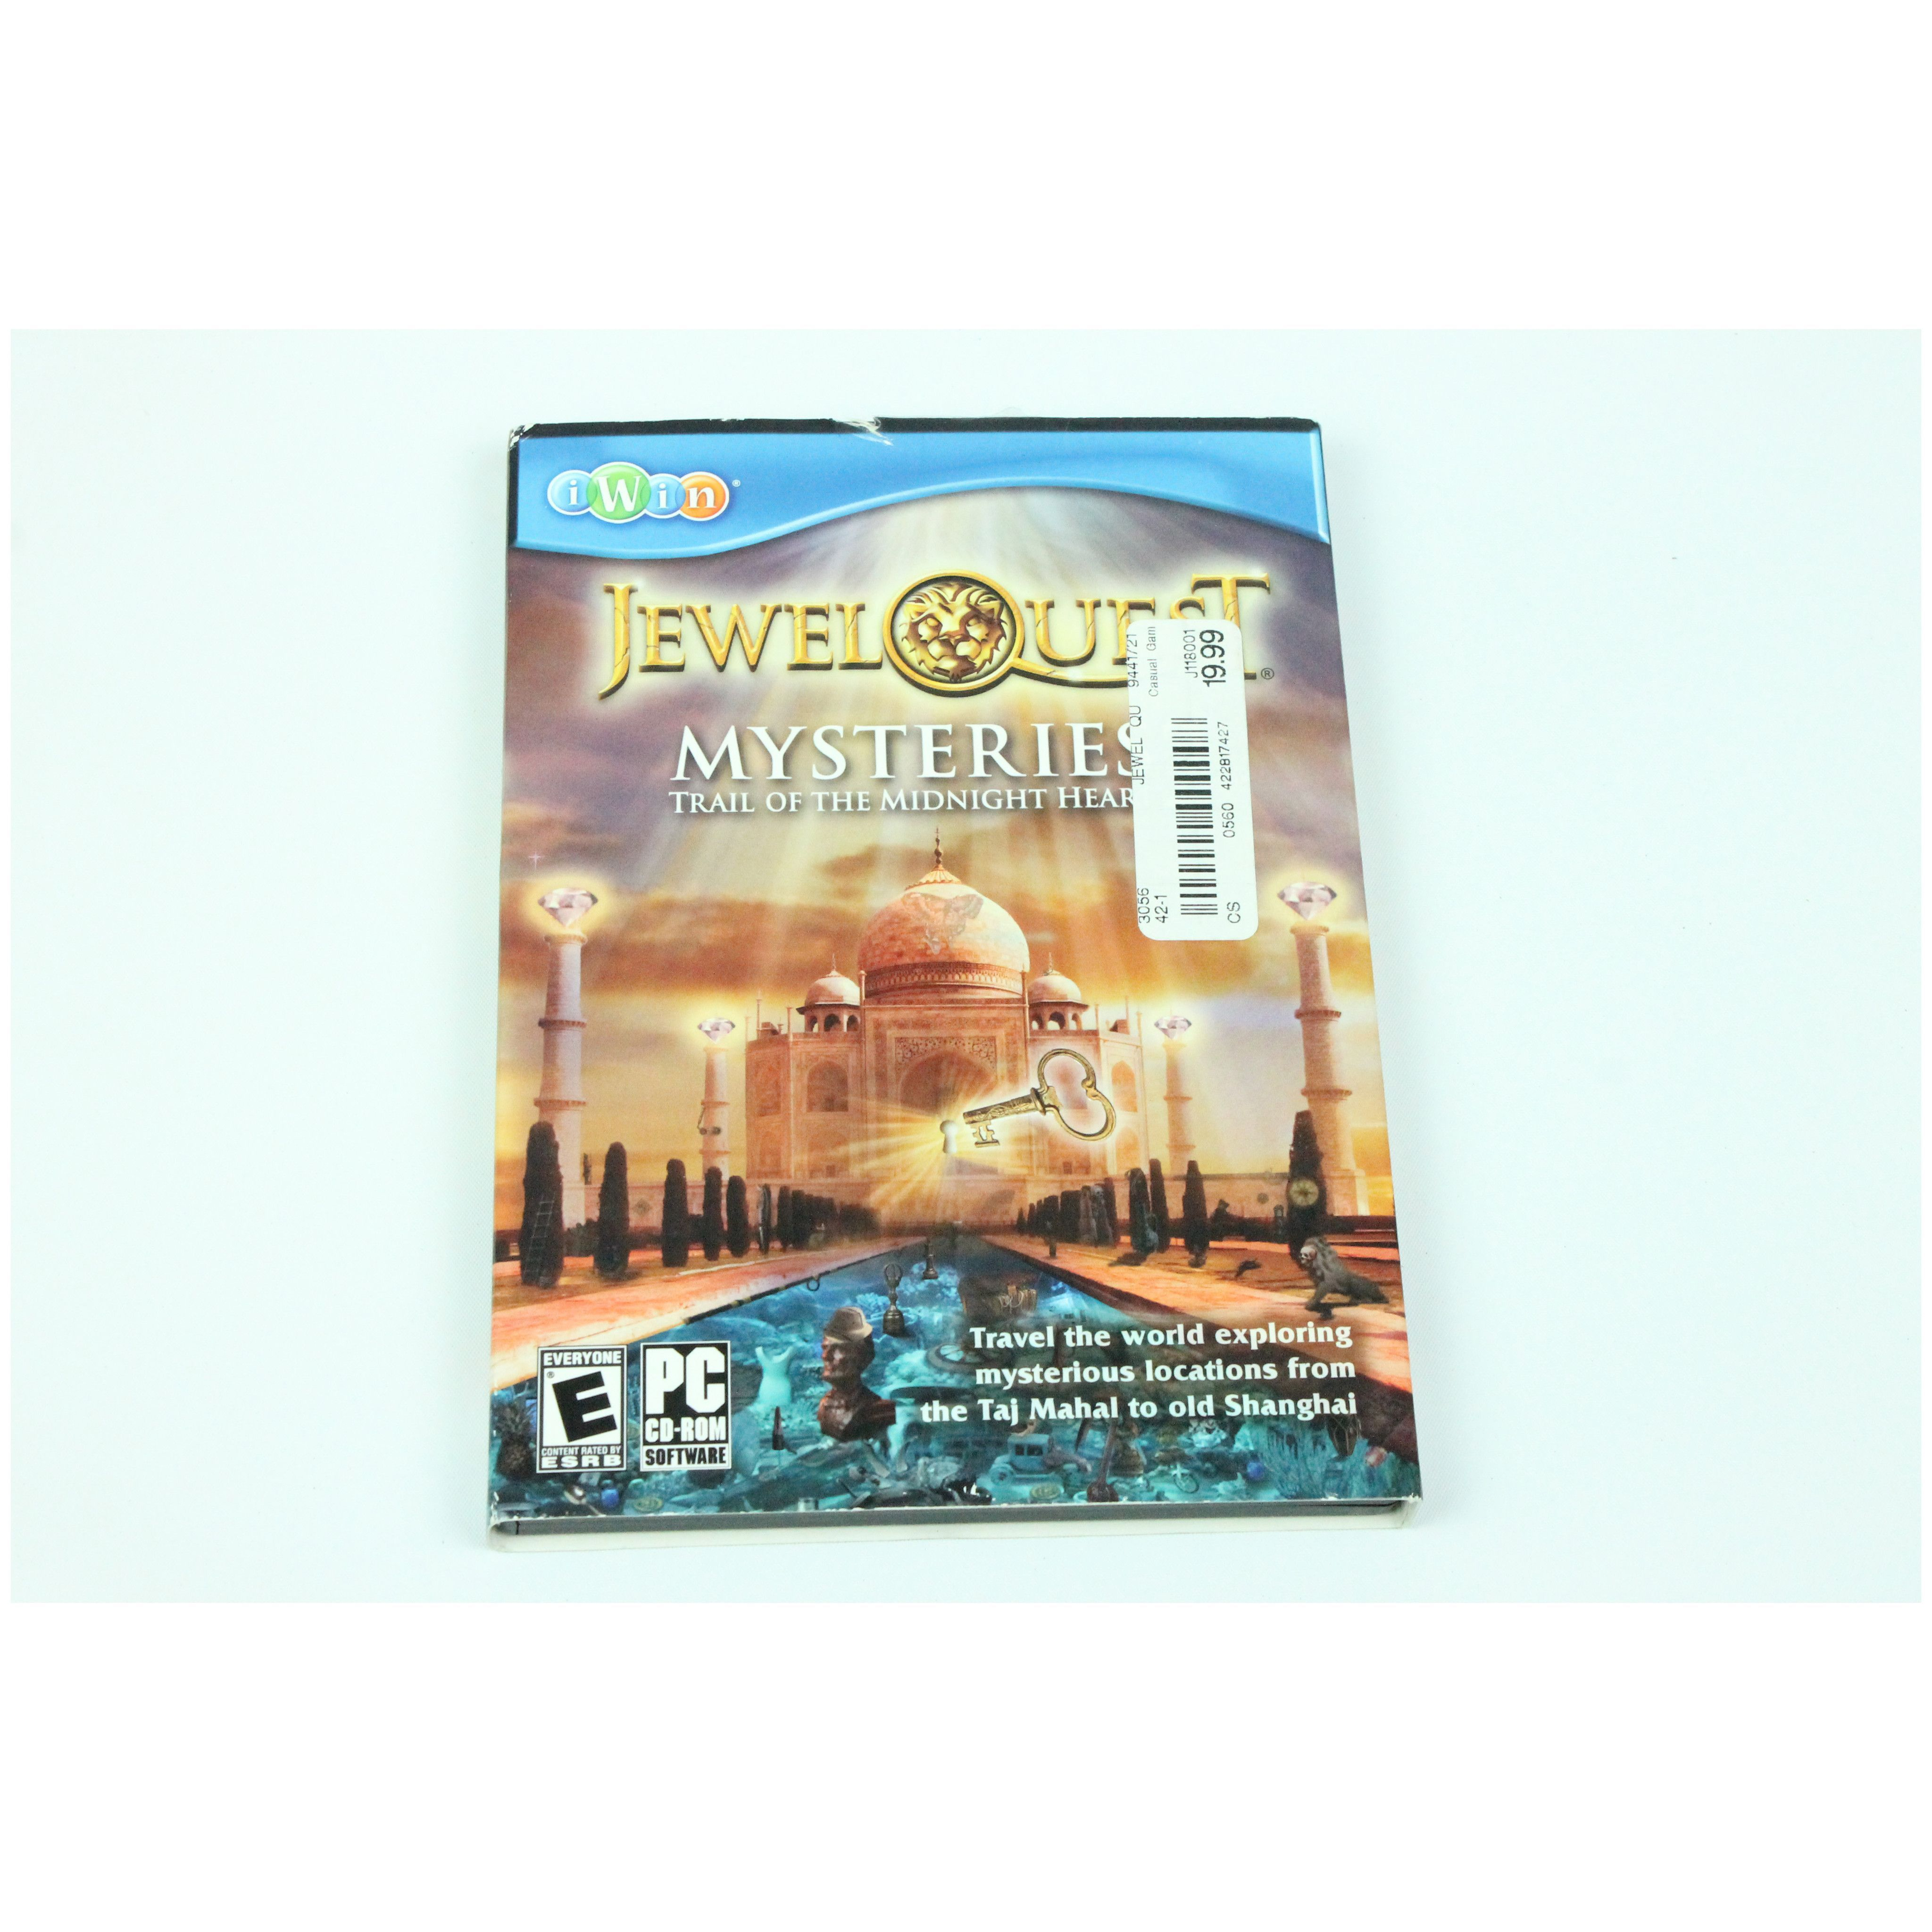 Jewel Quest Mysteries Trail of the Midnight Heart PC Game